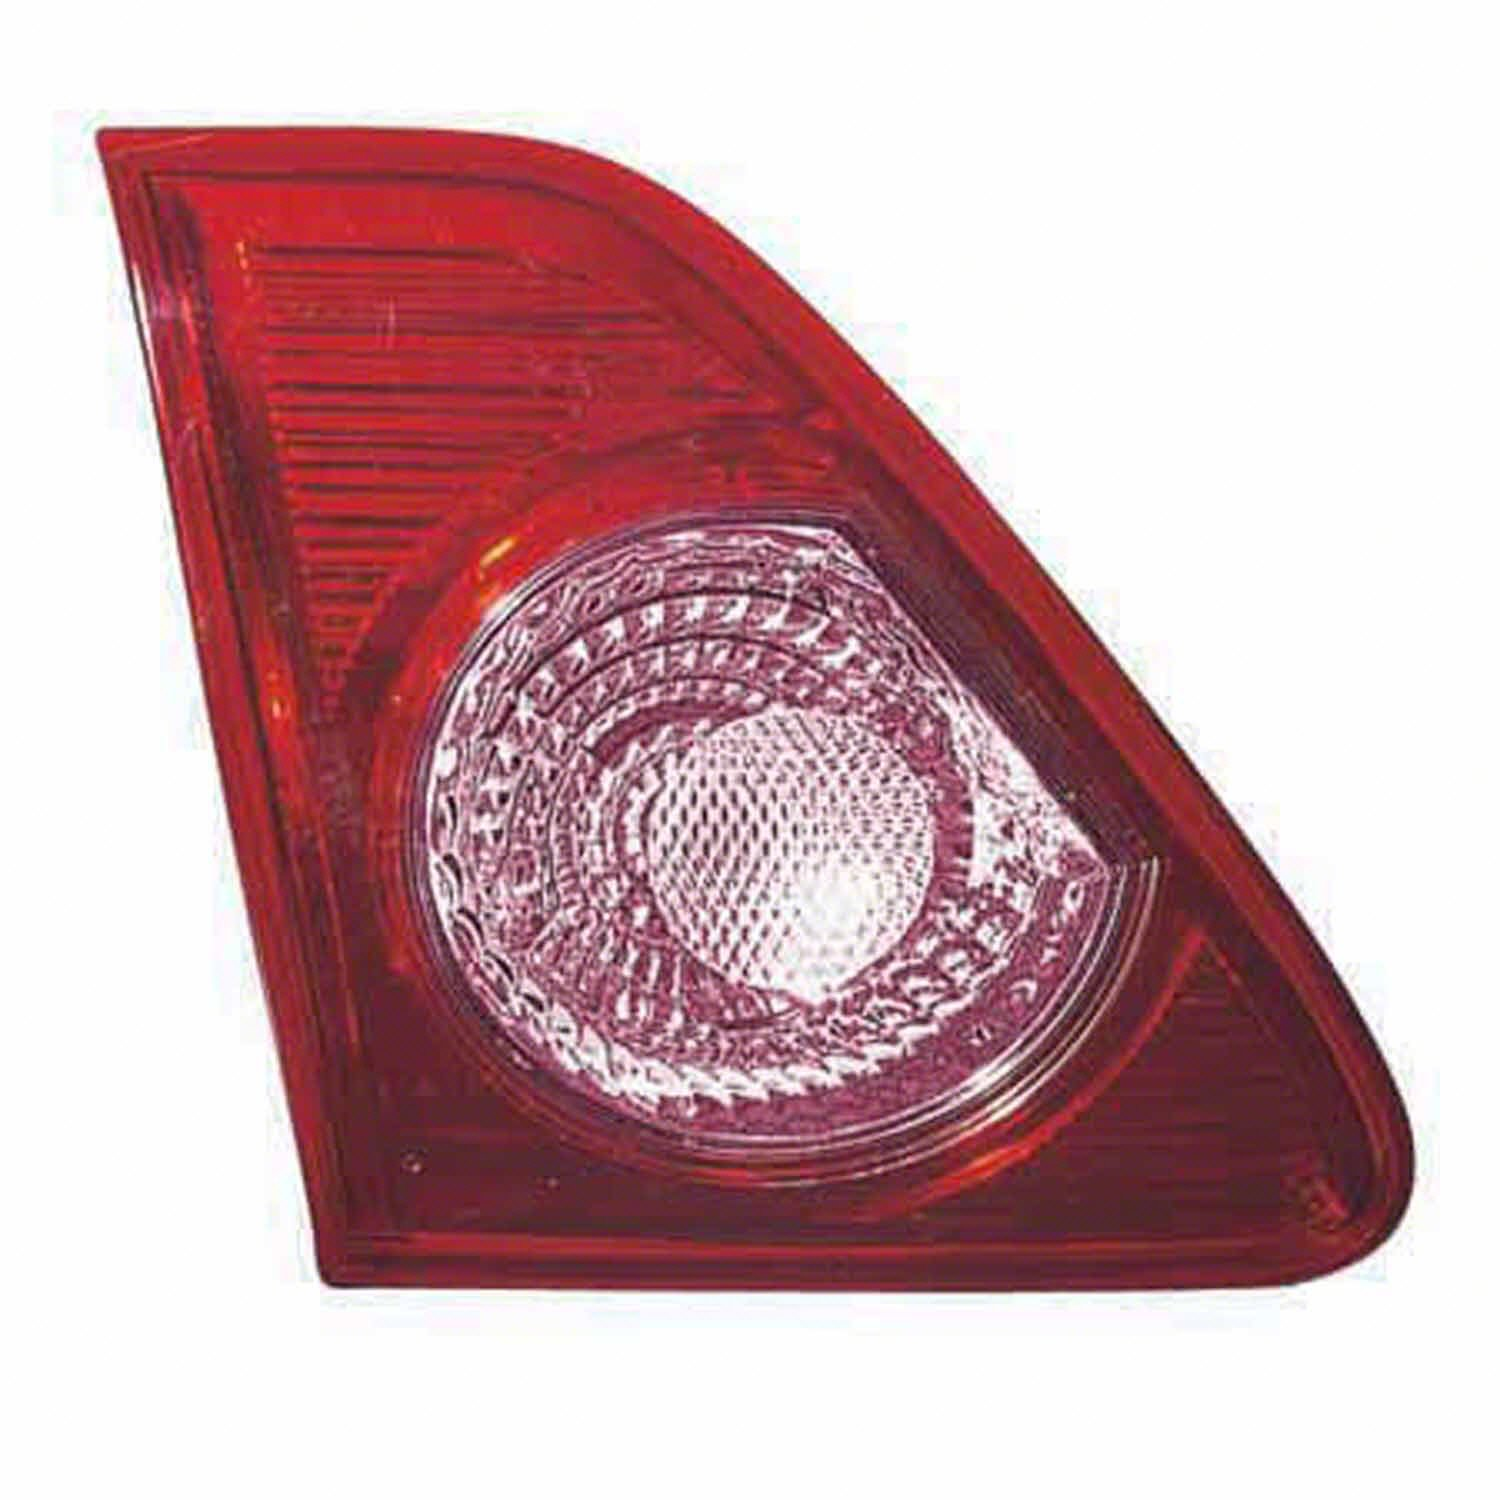 GetAllParts New Aftermarket Driver Side Rear Back Up Lamp Assembly 8159002190